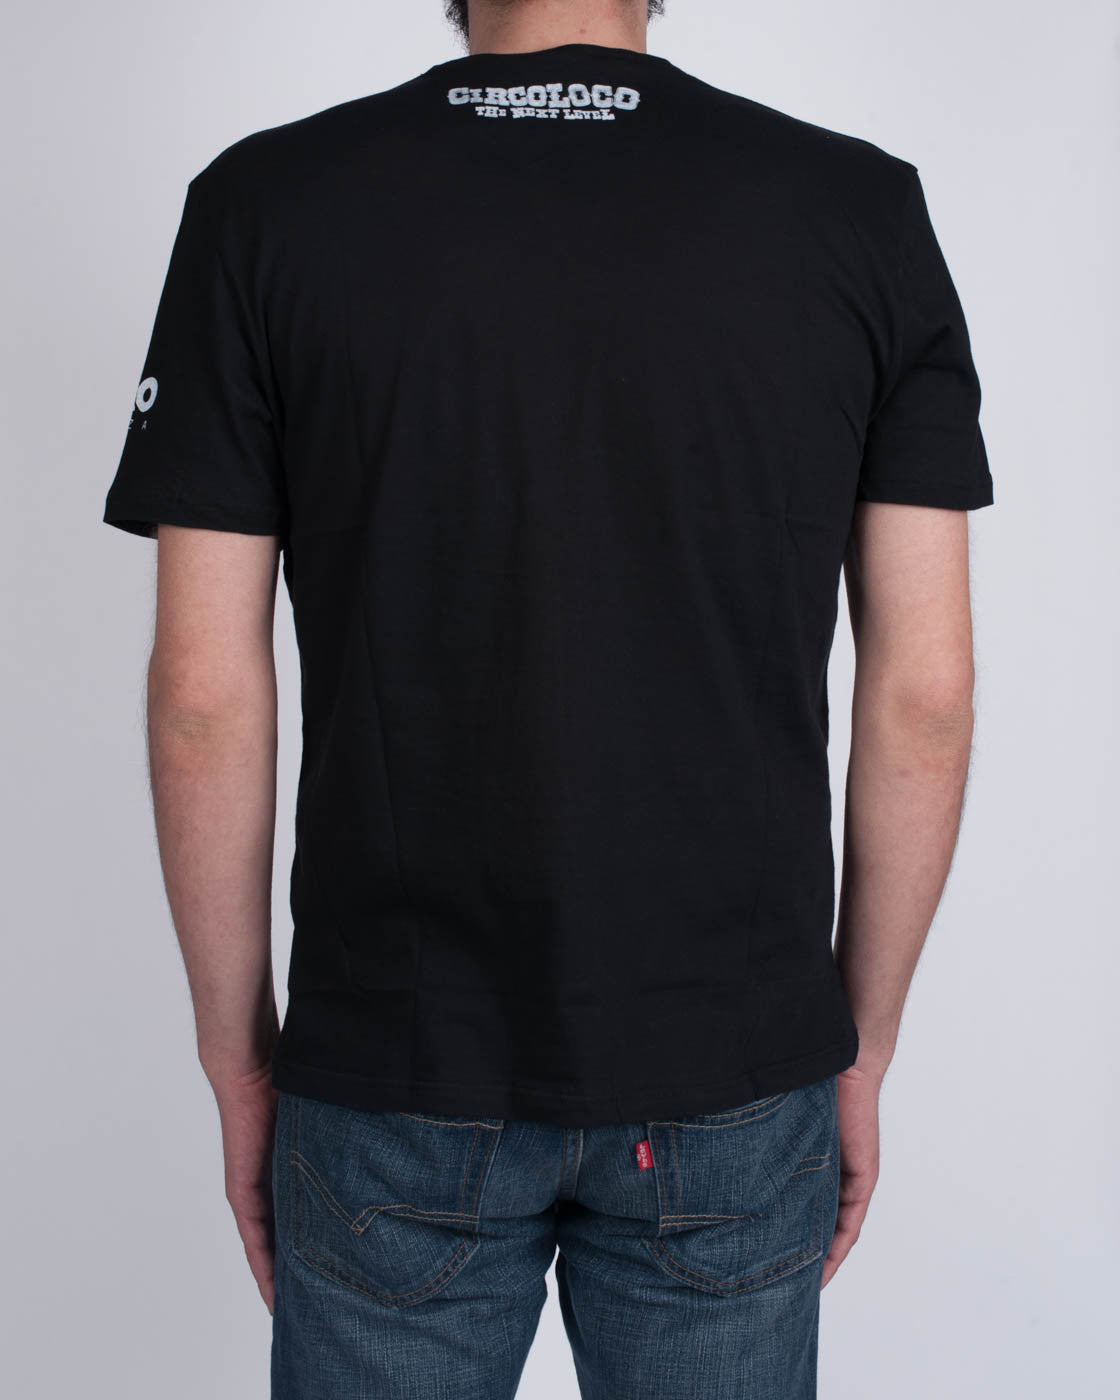 DC10 CIRCOLOCO Small Black Clown T-Shirt